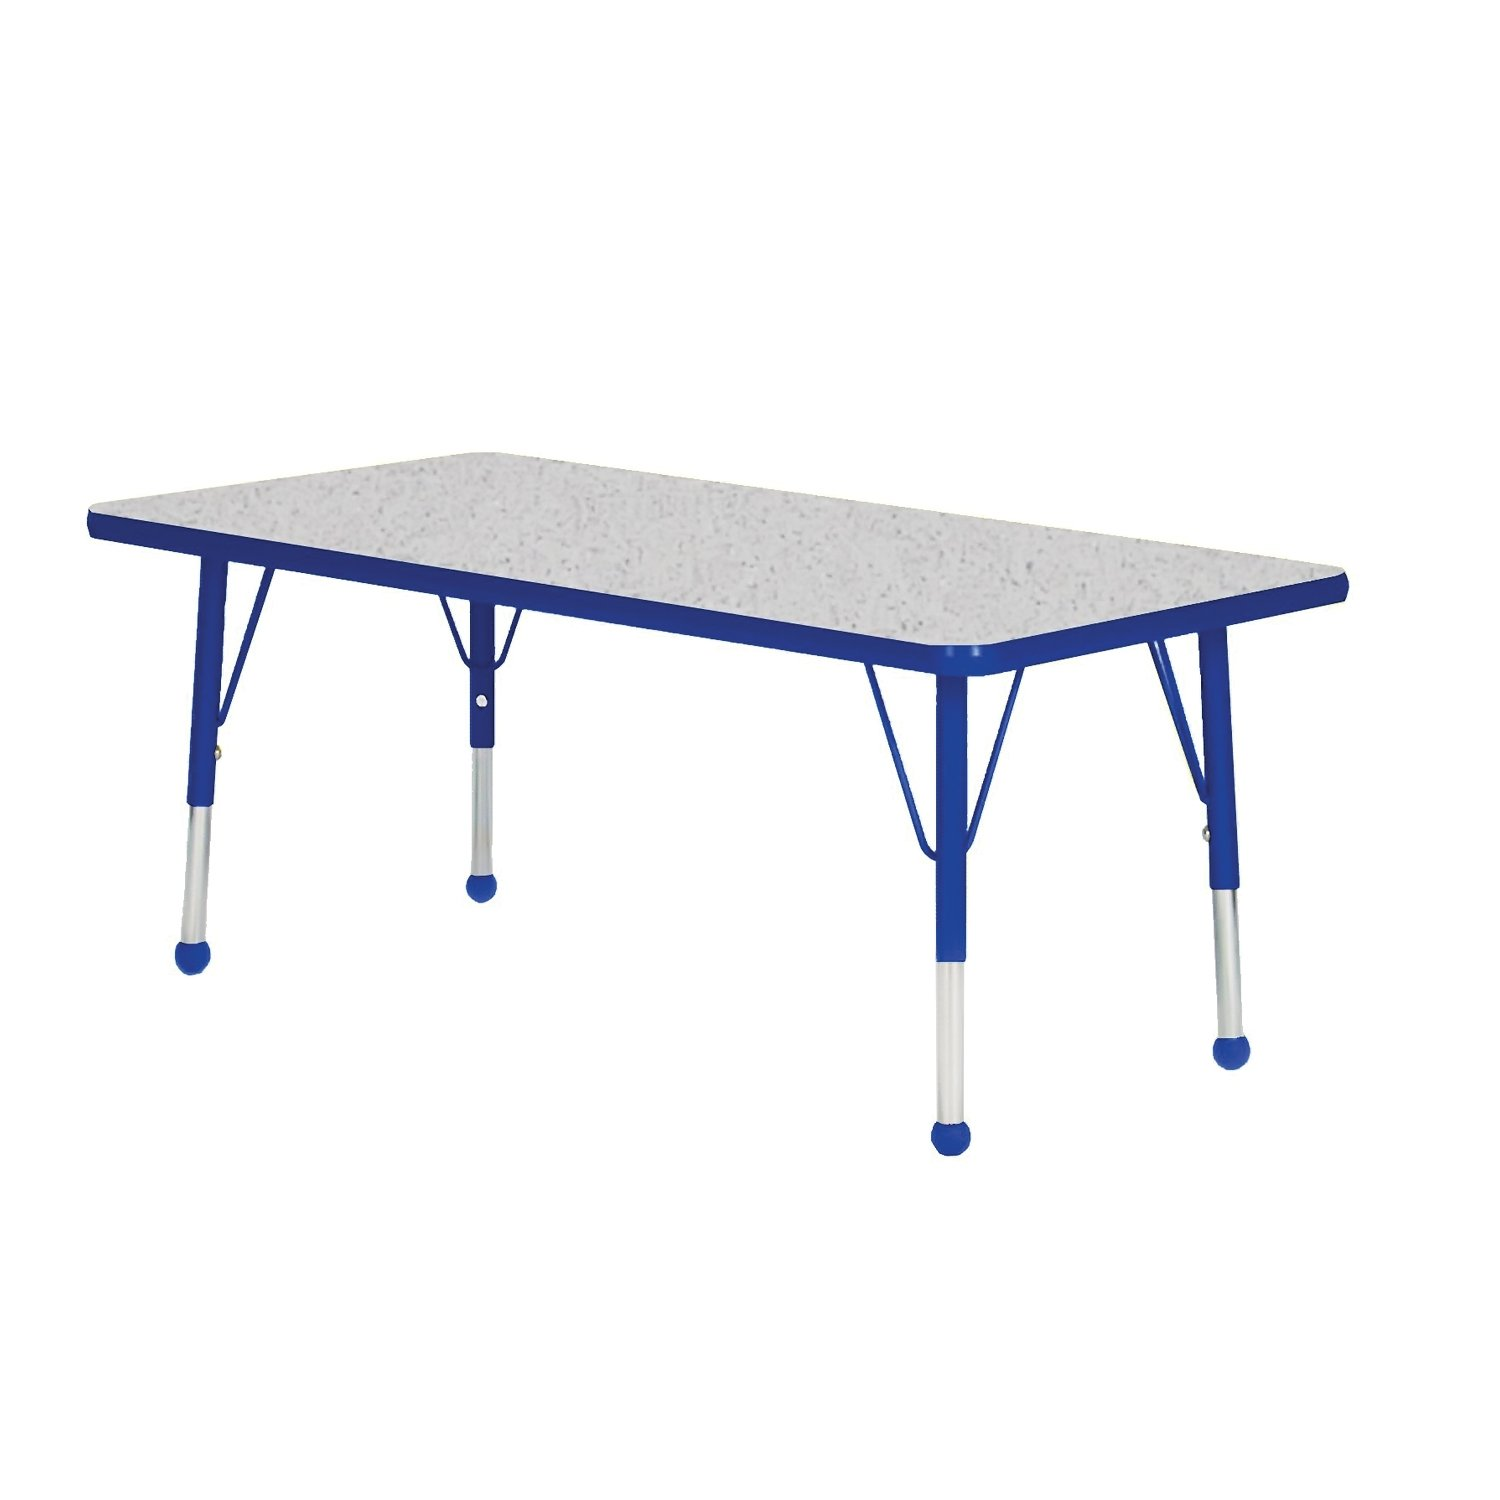 Creative Colors N3048BL-SB Activity Table, Ball Glides, Standard Height, 30'' x 48'', Rectangle, Gray Nebula Top, Blue Edge